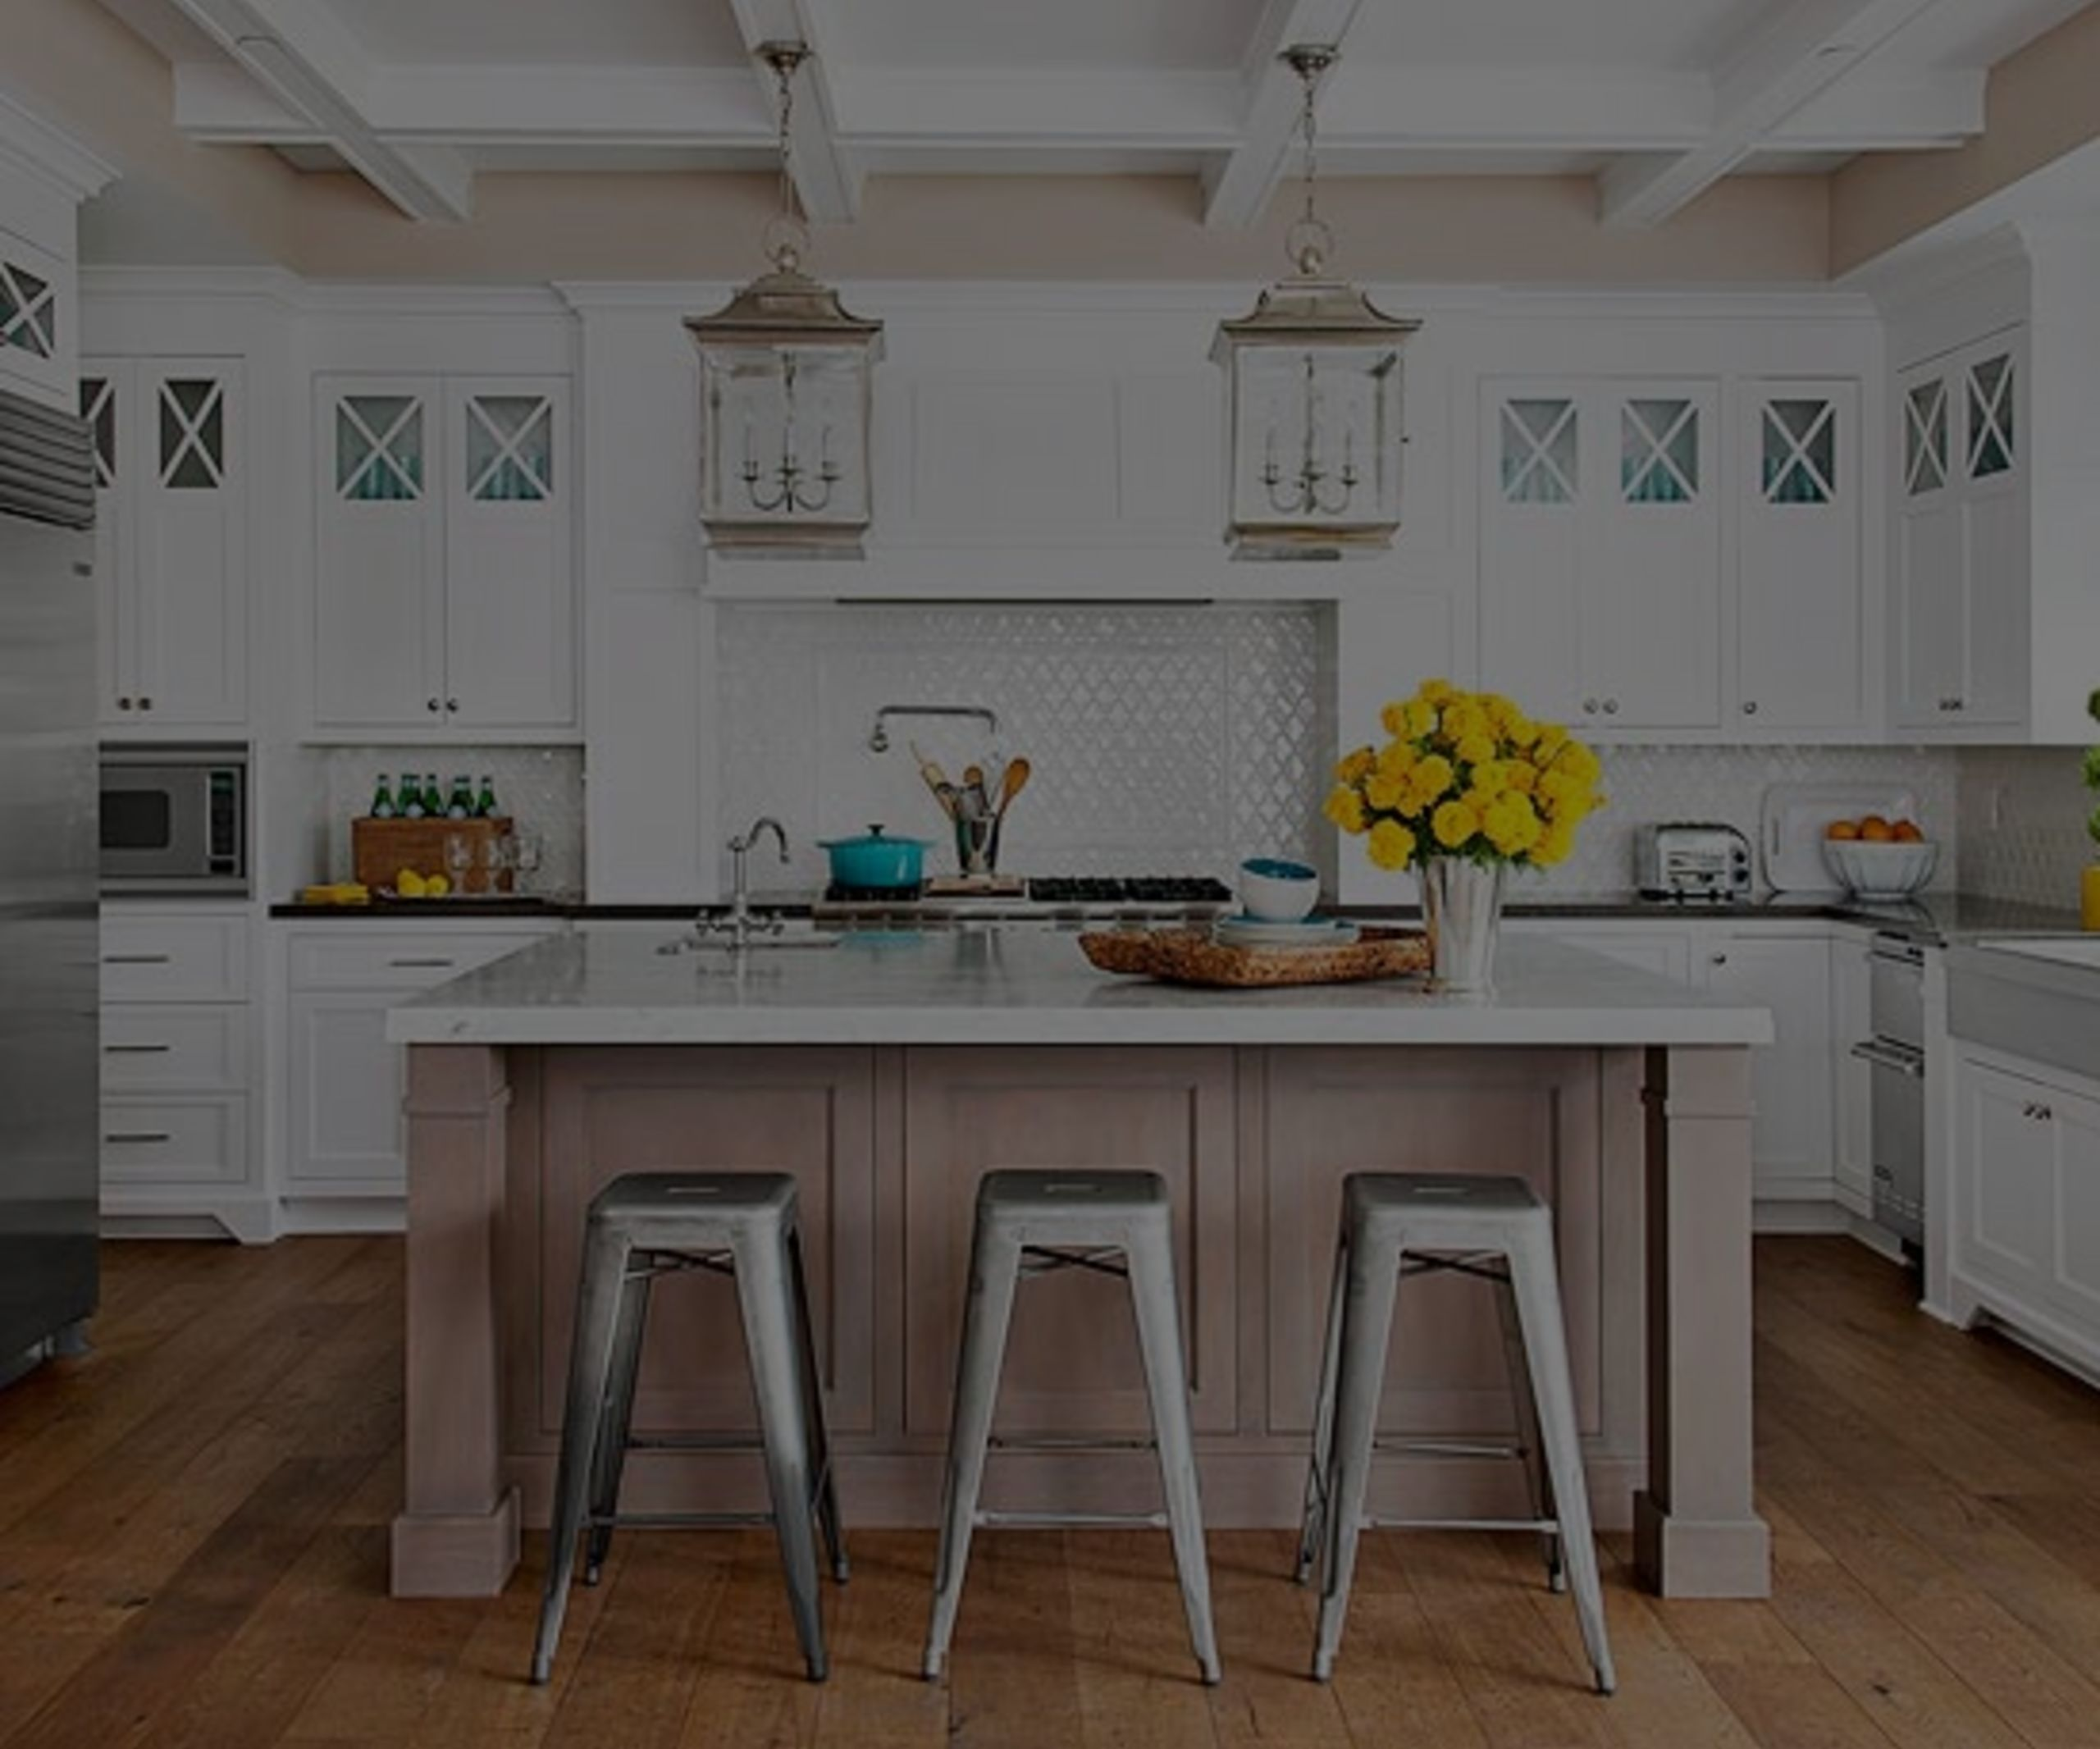 Gleaming kitchens with rustic finishes